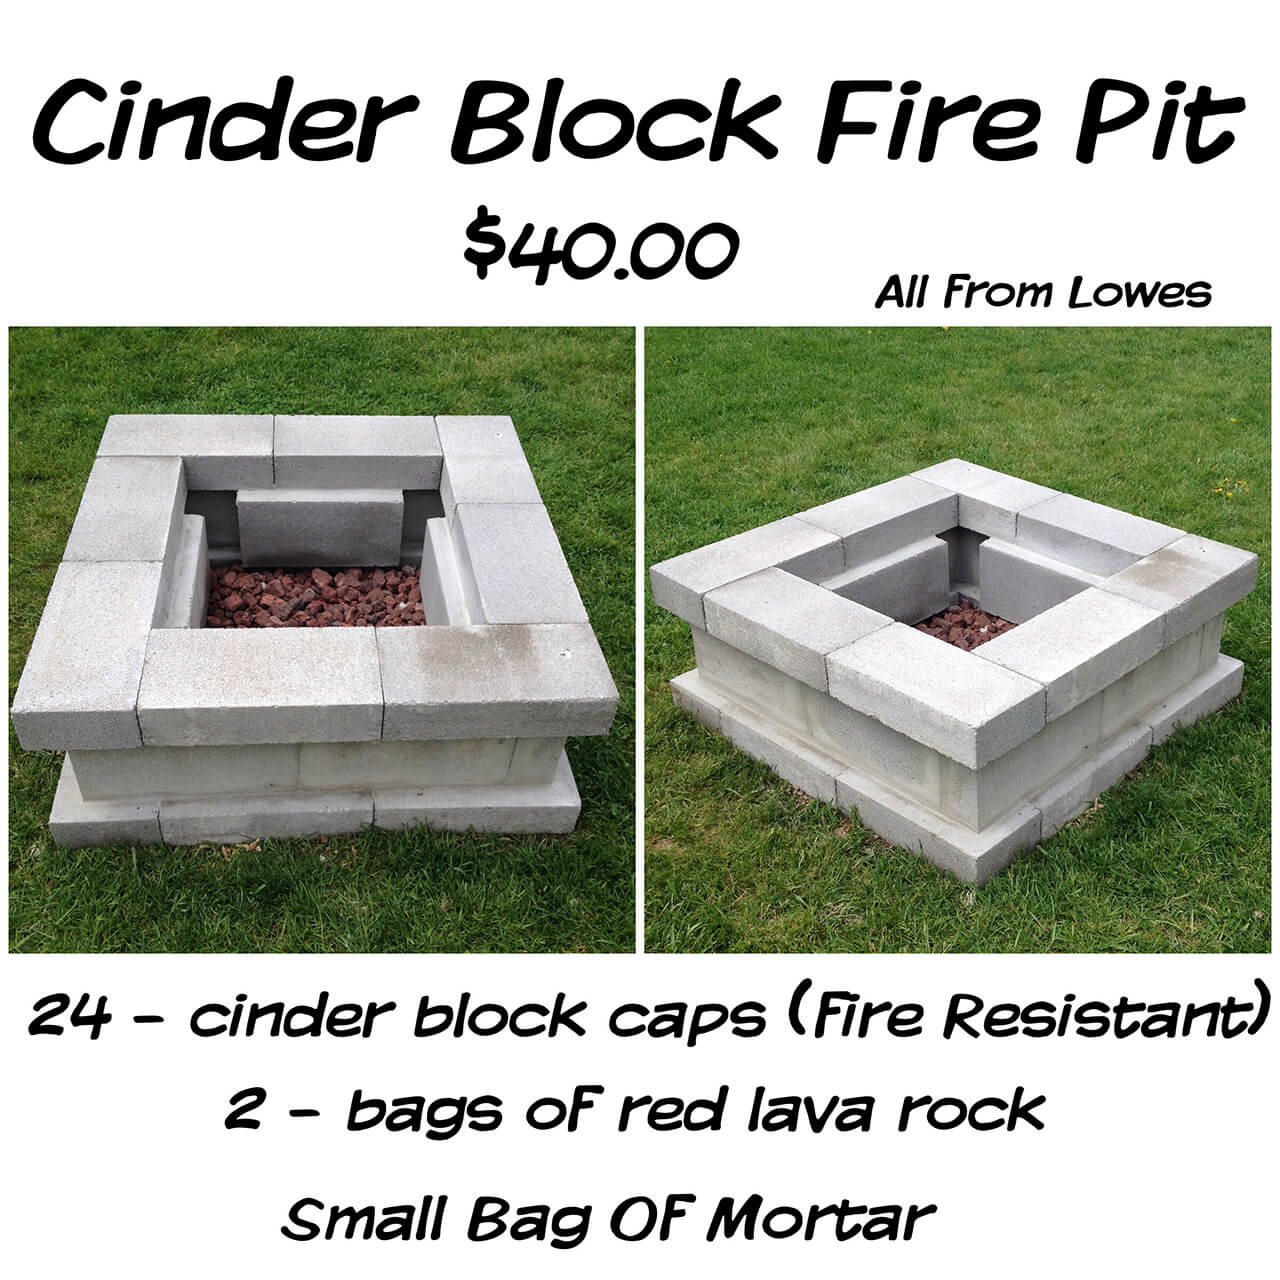 27 Best DIY Firepit Ideas and Designs for 2017 on Cinder Block Fireplace Diy  id=93700